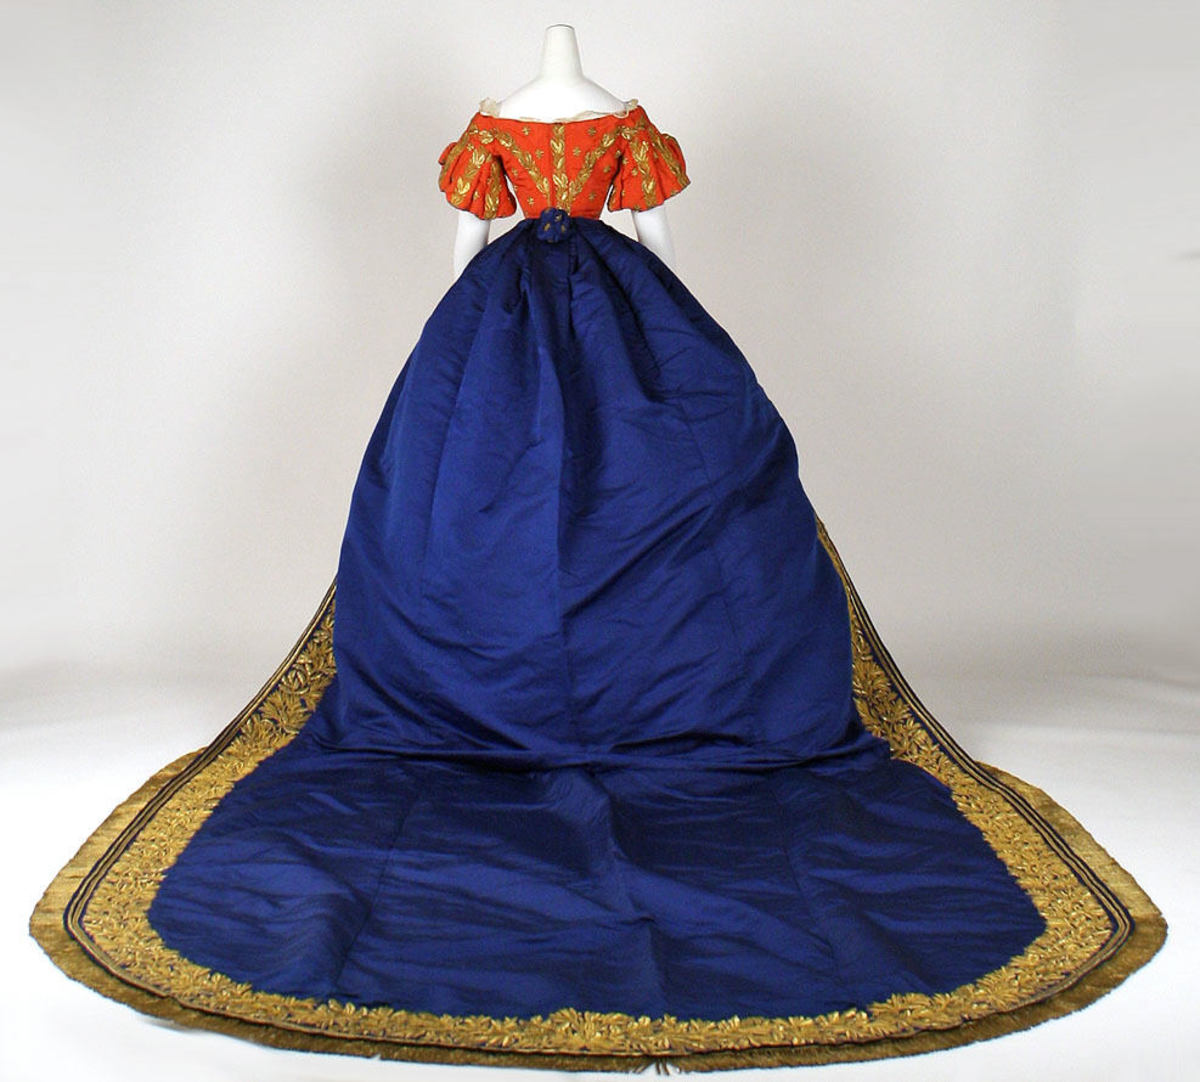 The train of the court dress.